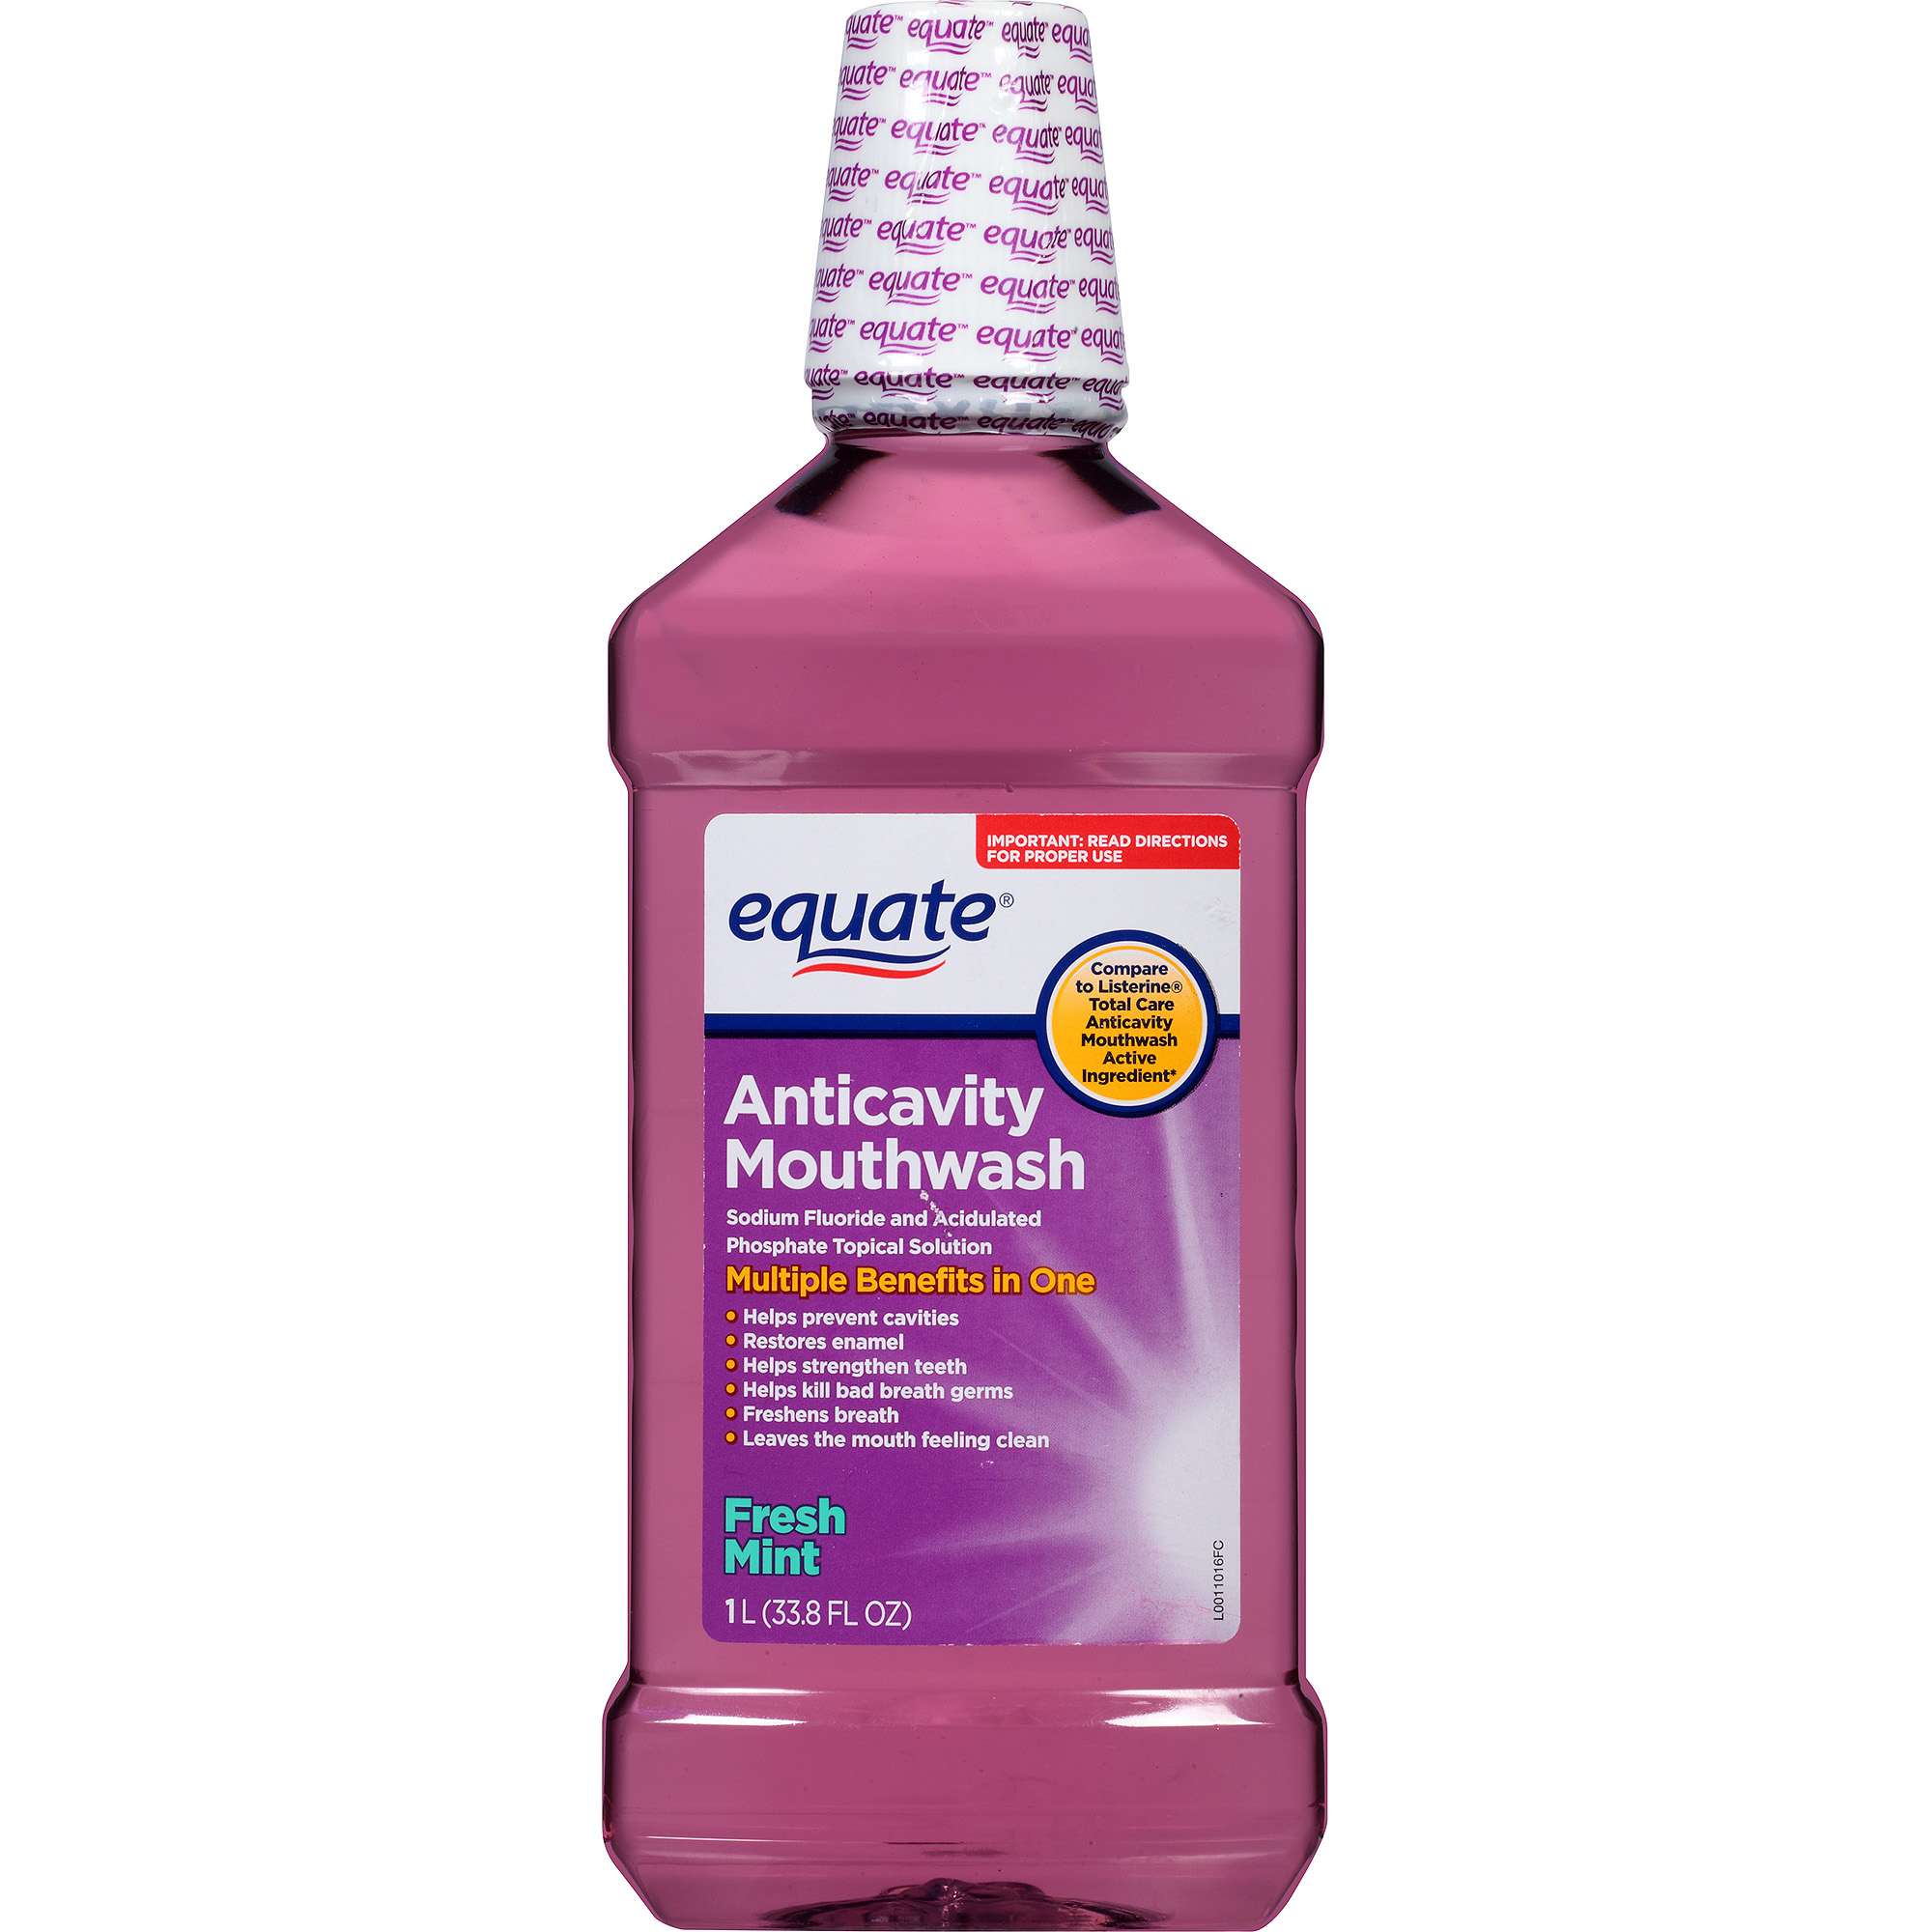 Equate Fresh Mint Anticavity Mouthwash, 33.8 fl oz